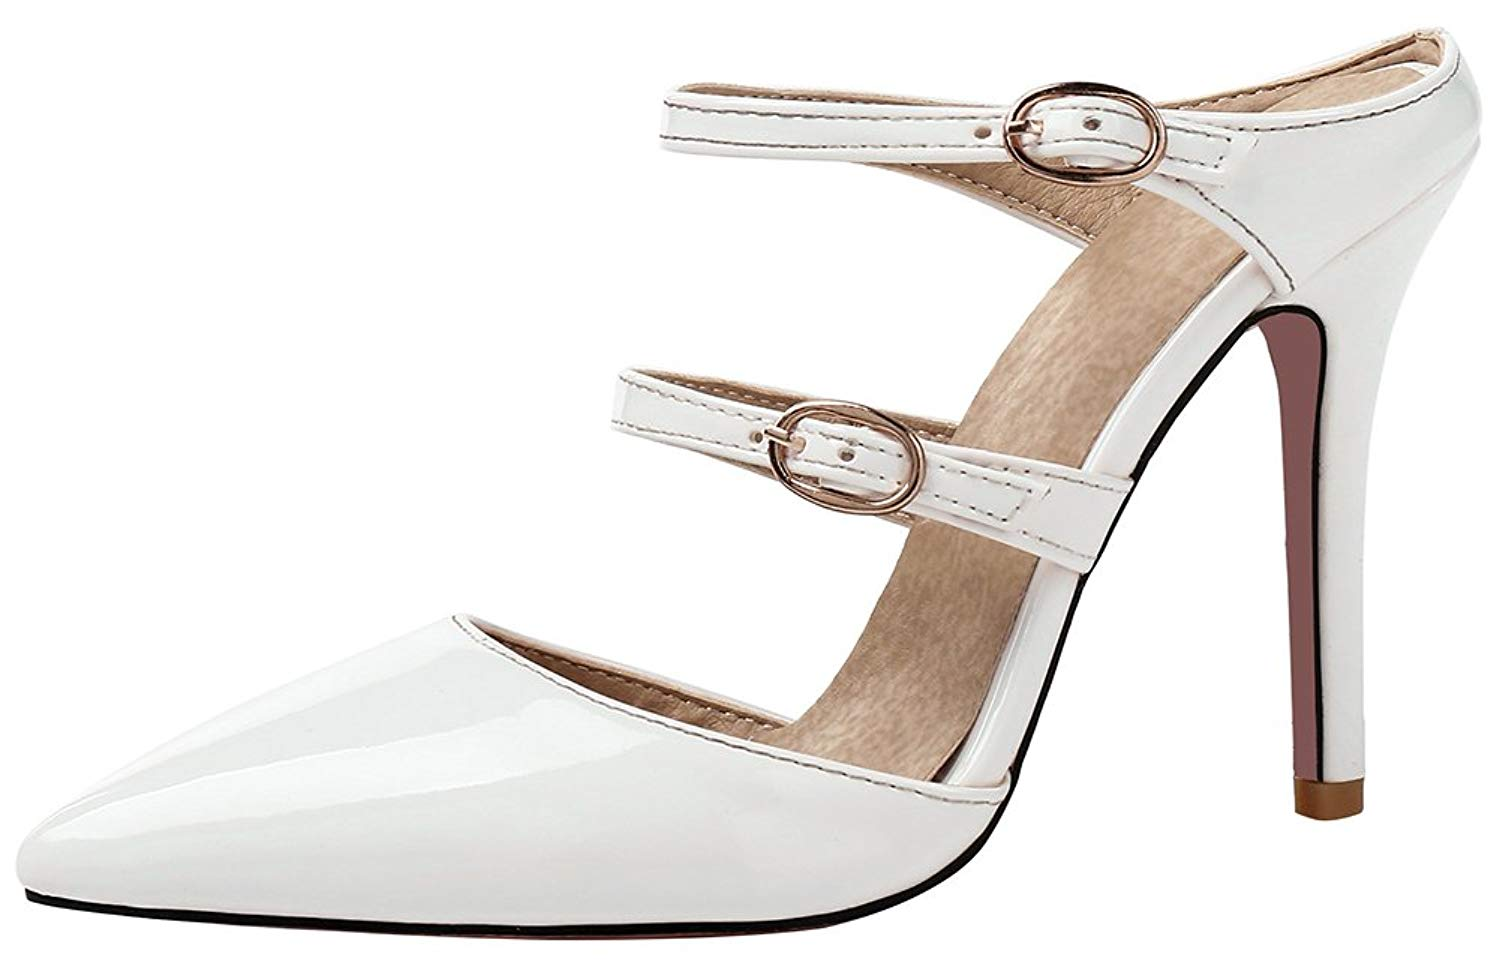 9c30e2d1145 Get Quotations · Mofri Women s Dressy Buckle Strap Pointed Toe Stiletto  High Heels Mules Shoes Sandals